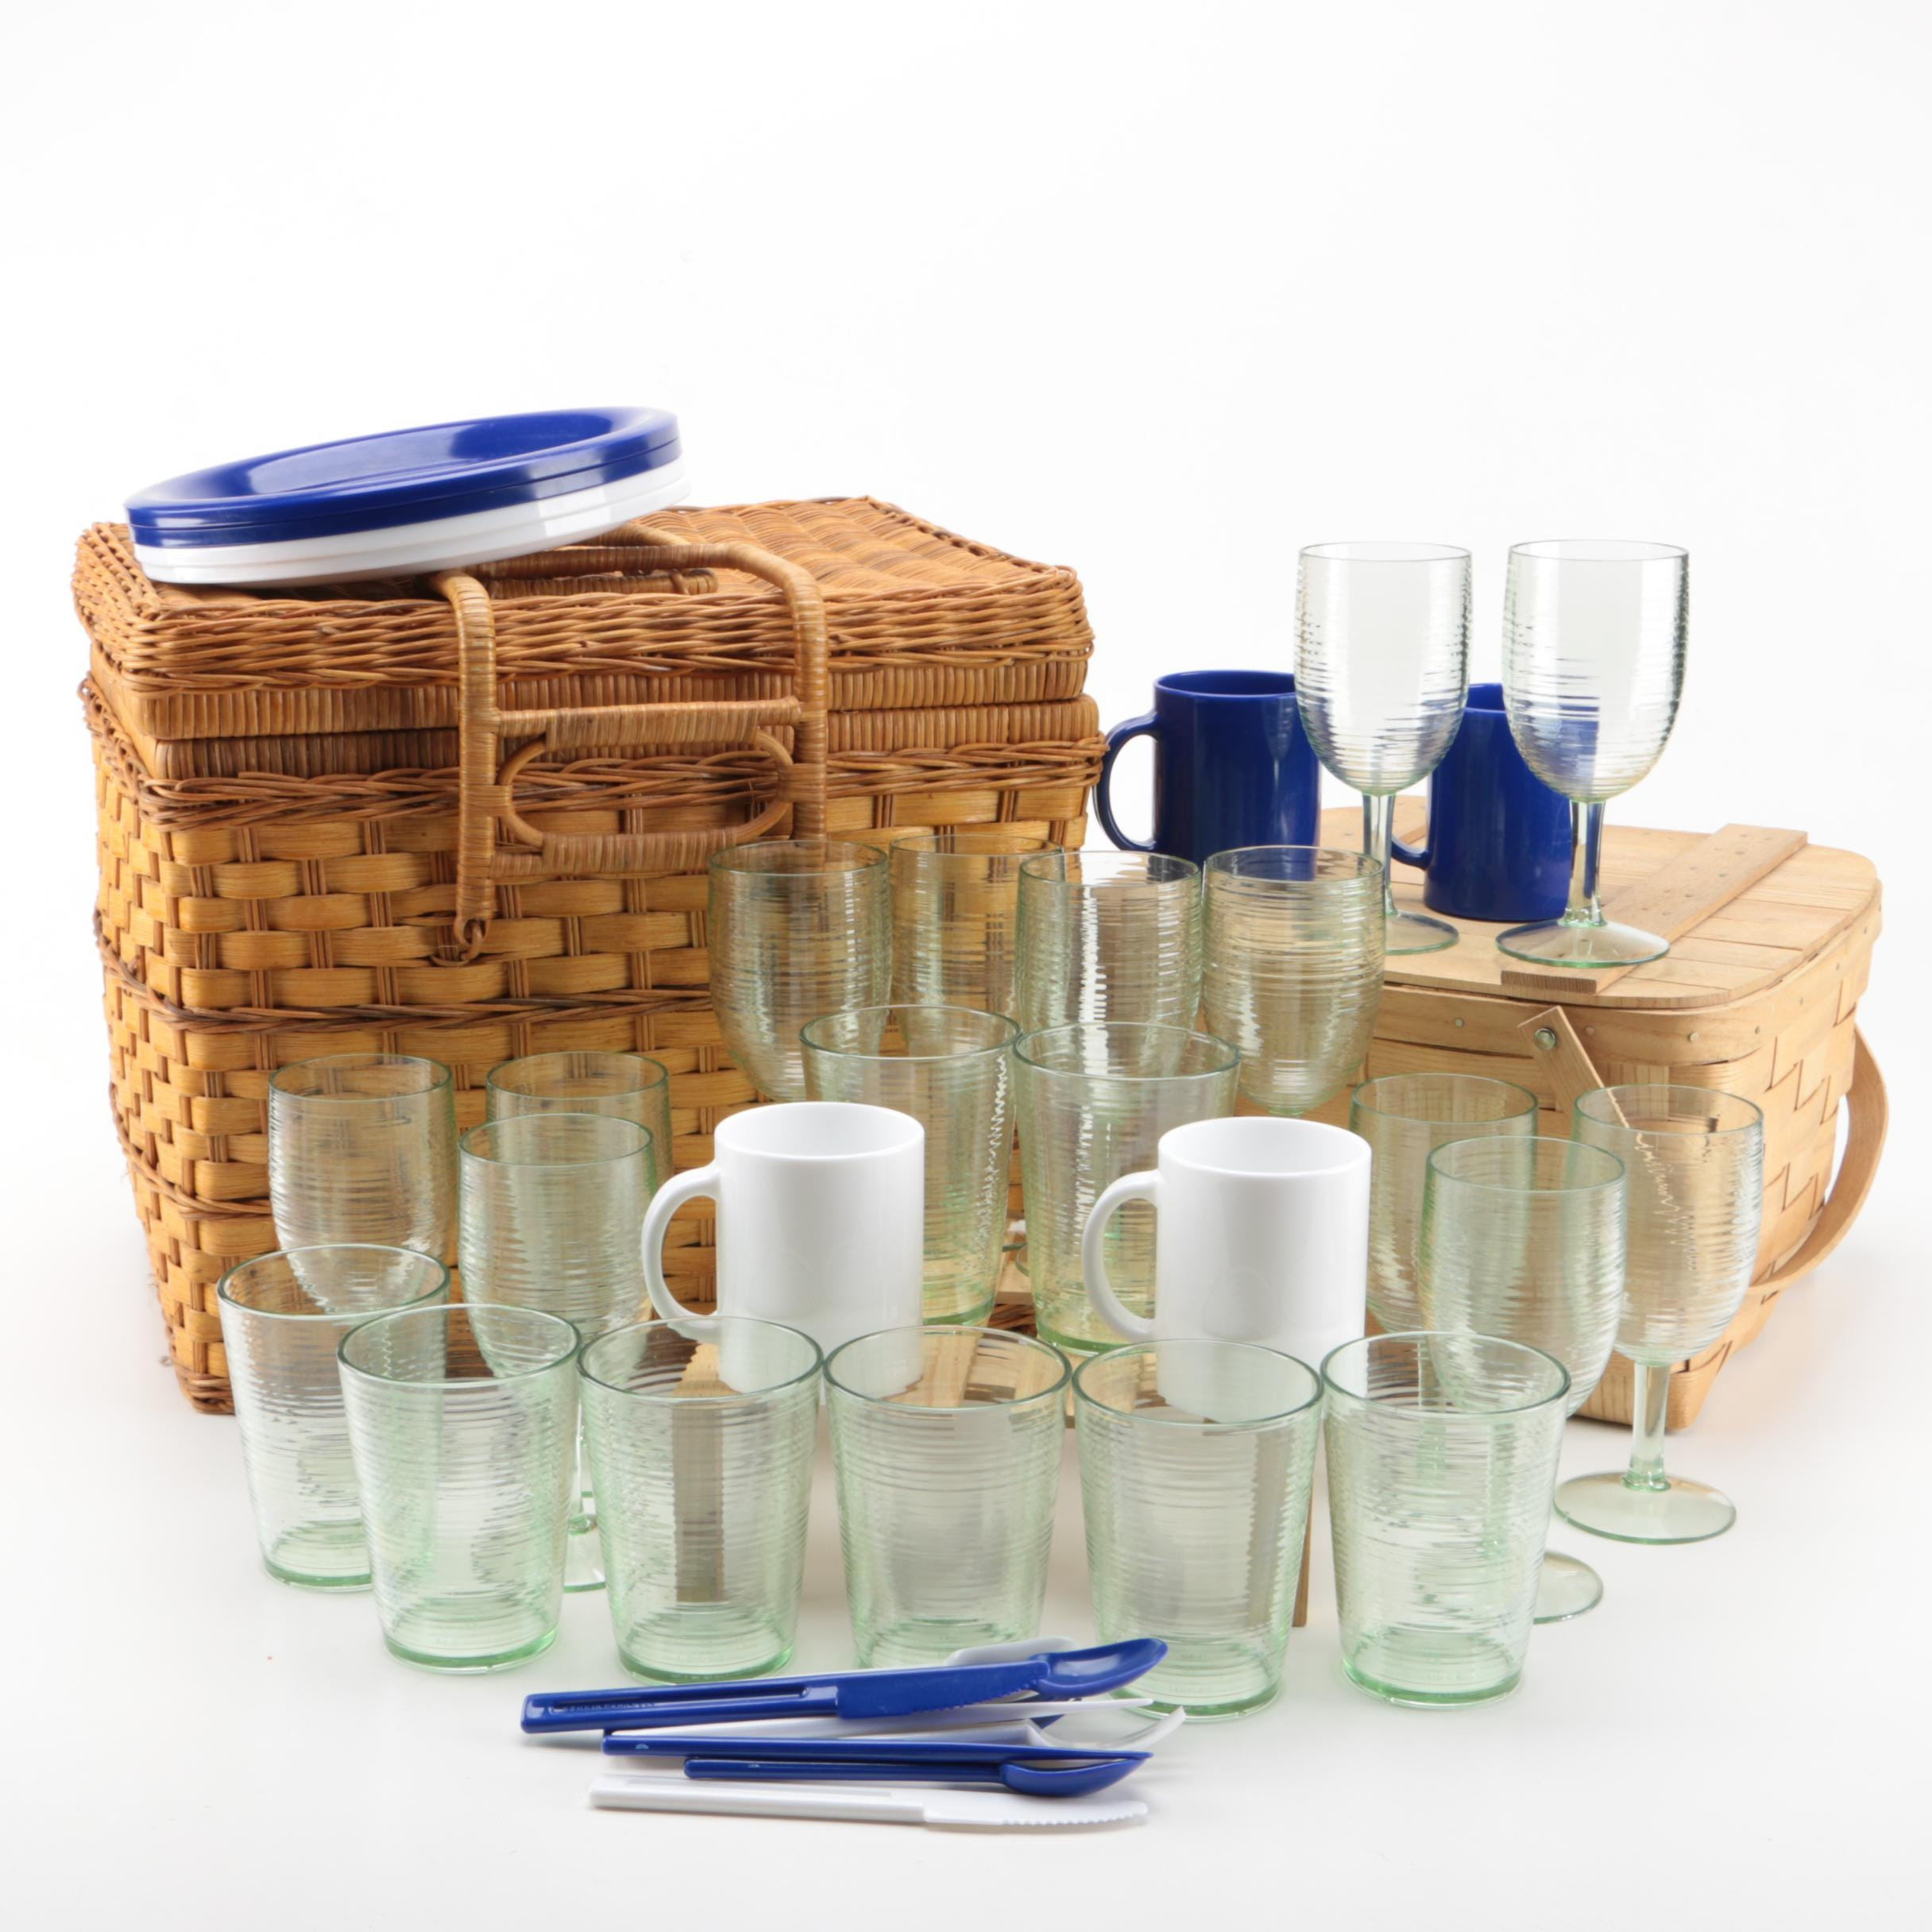 Pair of Picnic Baskets with Cups, Plates, and Utensils